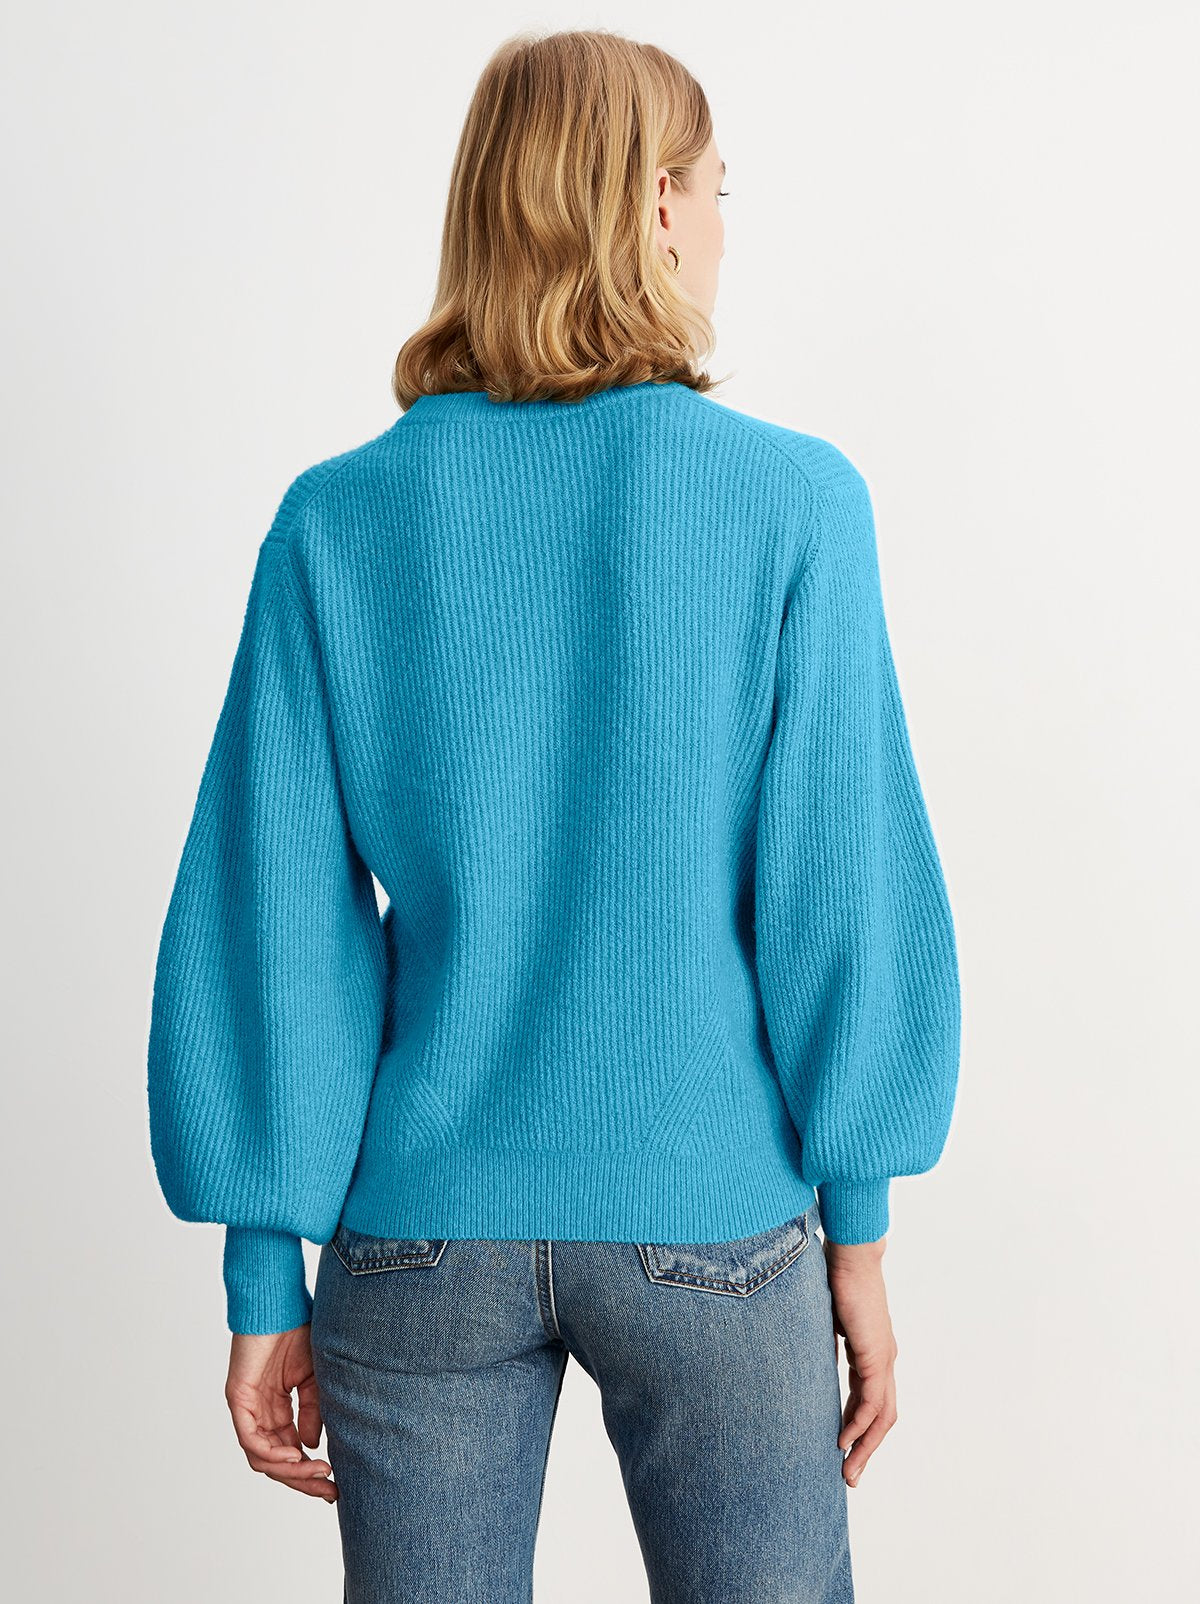 Odell Blue Rib Knit Jumper by KITRI Studio